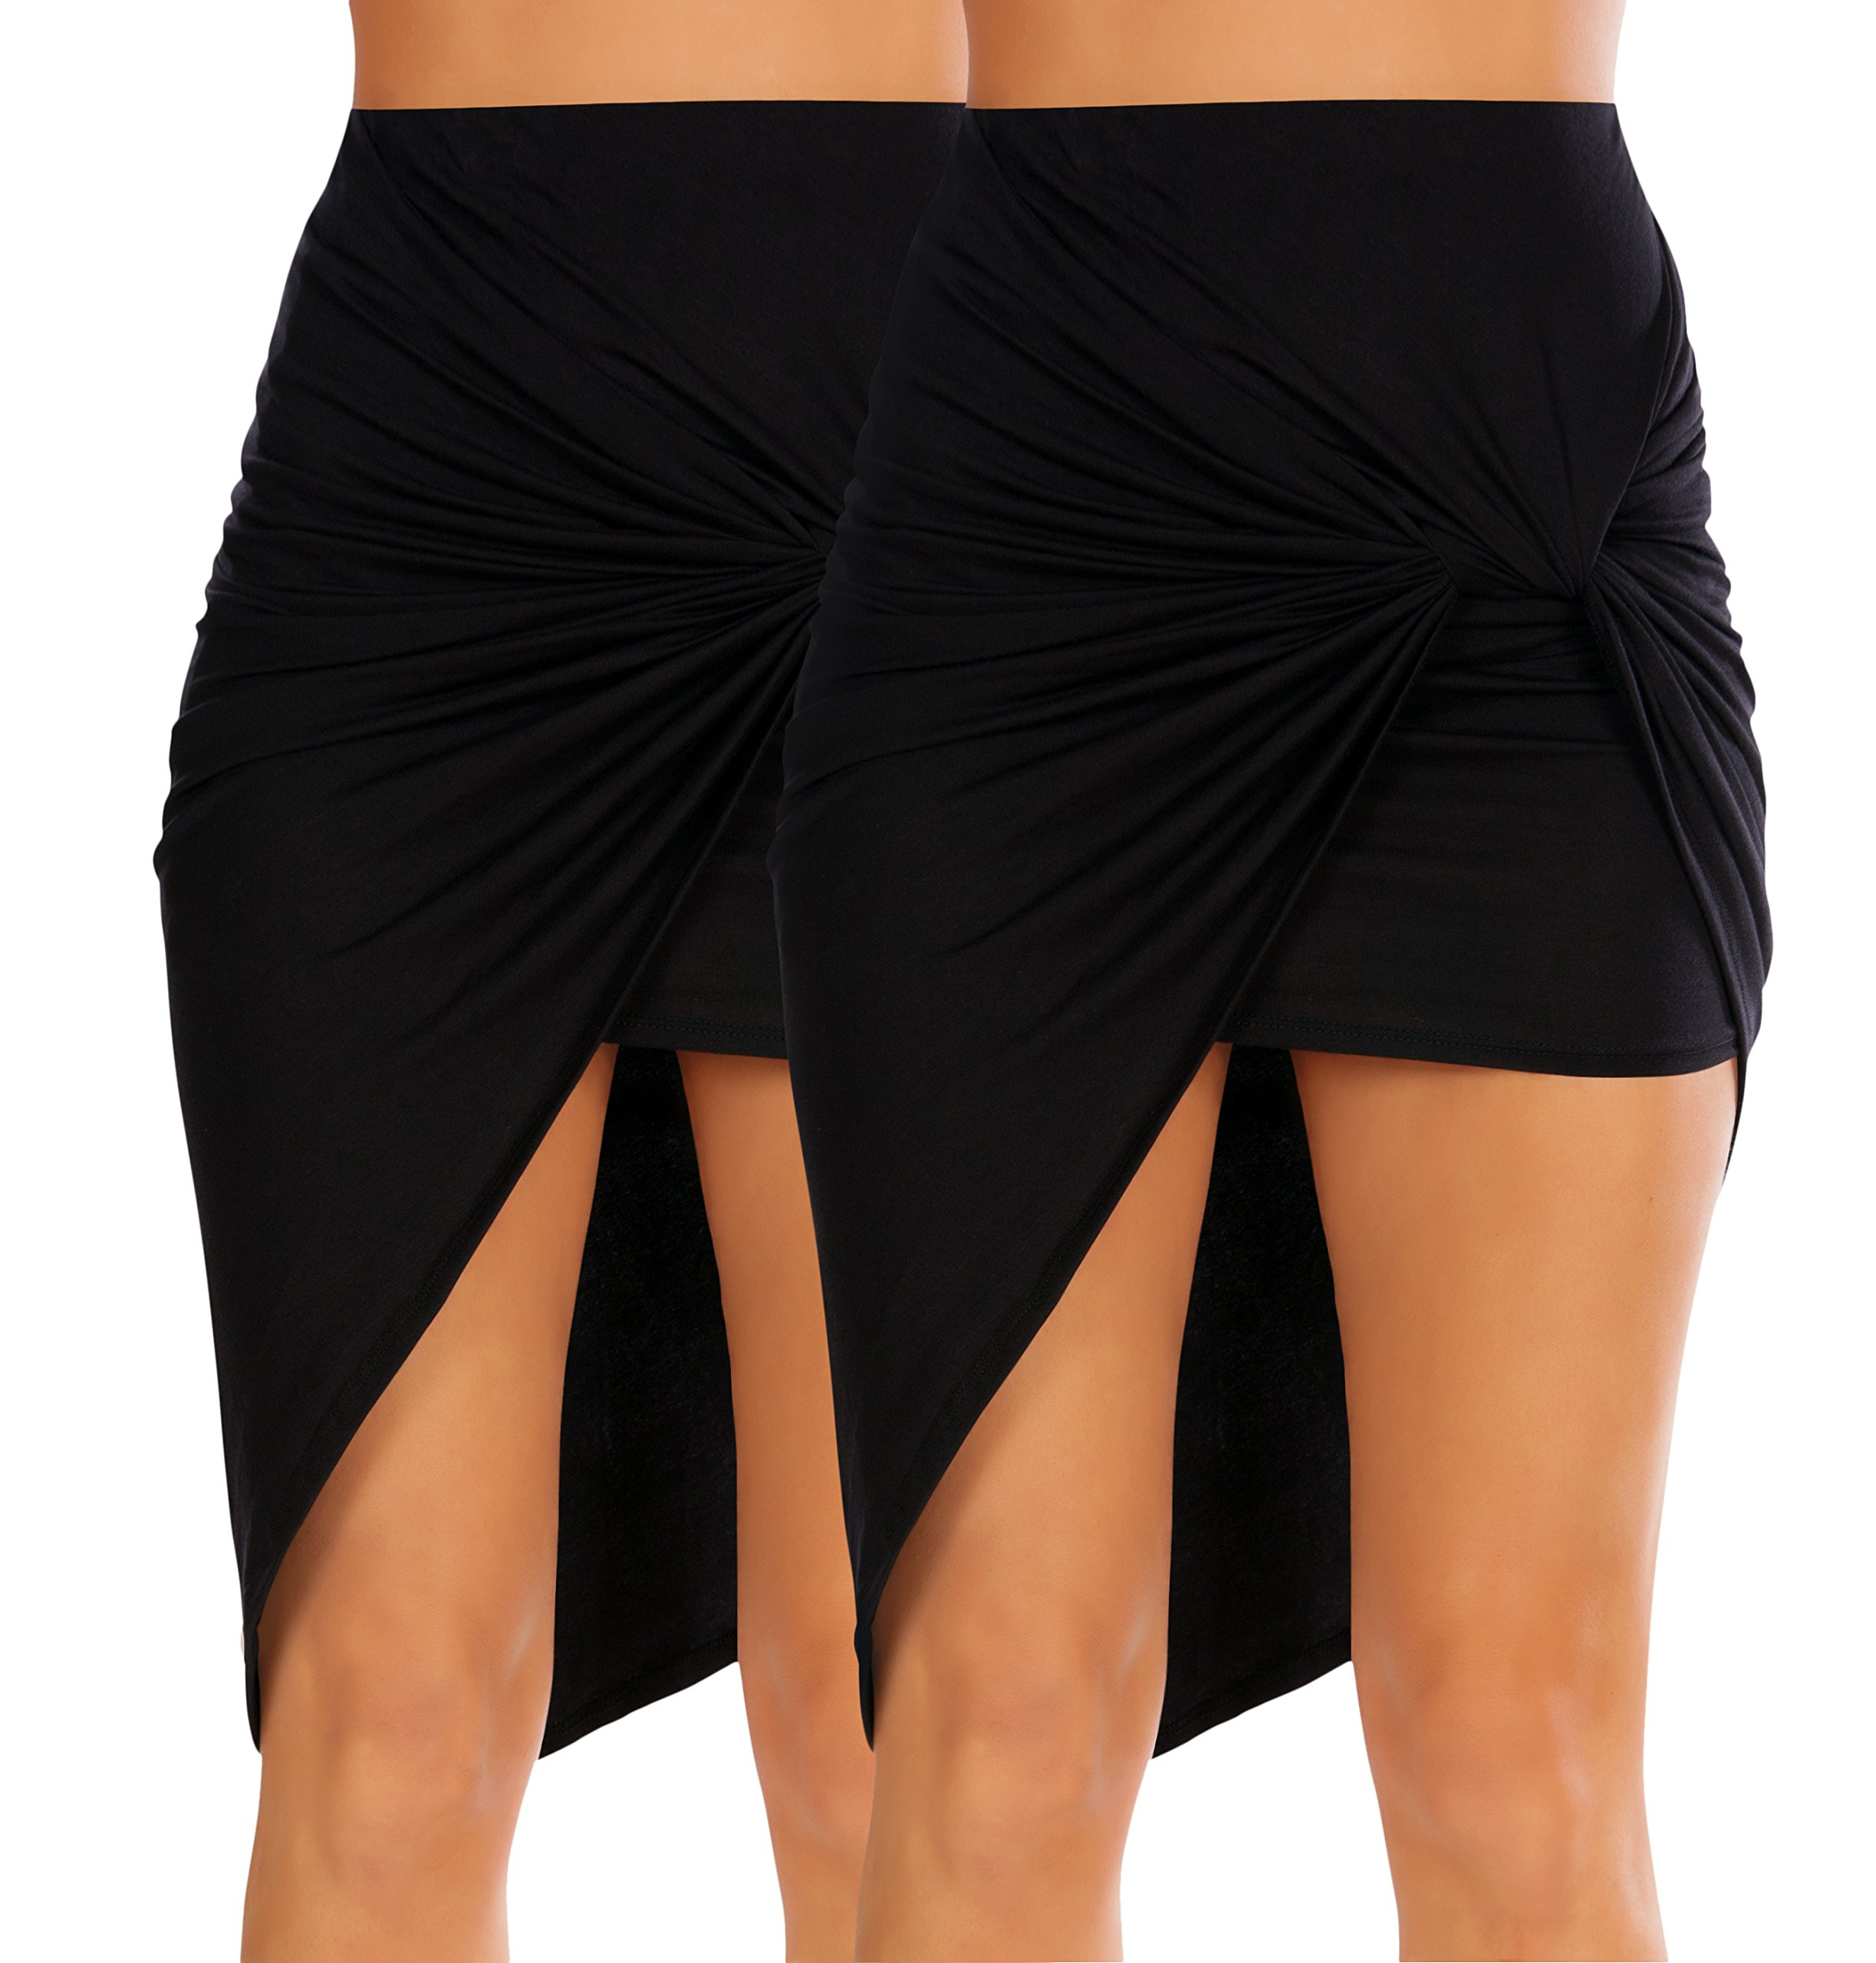 Womens Drape Up Stretchy Asymmetrical High Low Short Mini Bodycon Pencil Skirt (Size XX-Large, 2 Pk Black/Black)